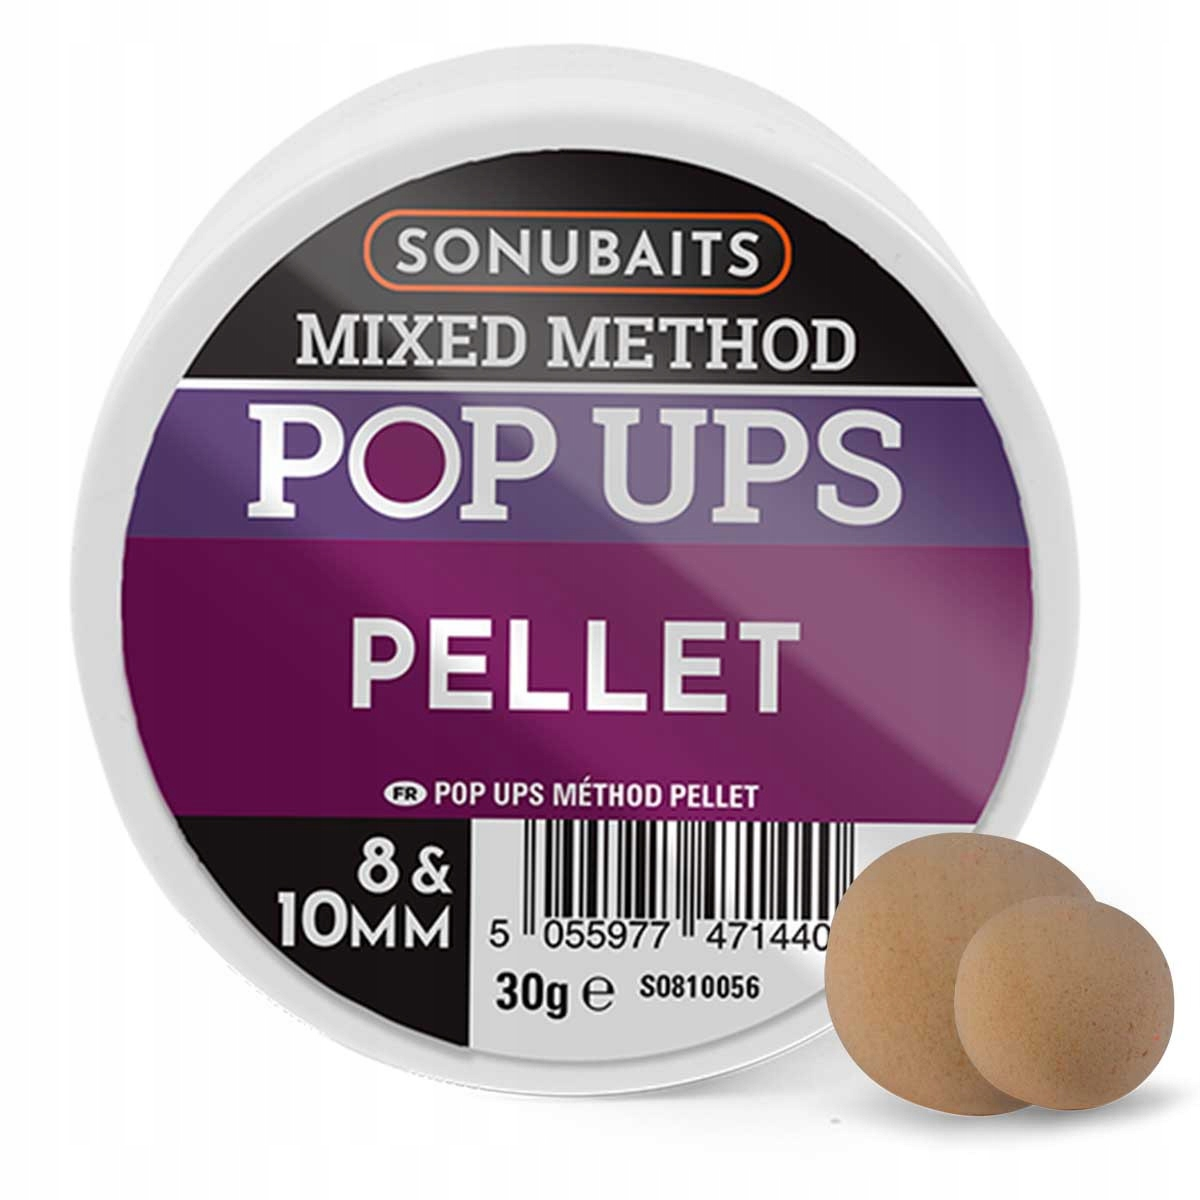 Sonubaits Mixed Method Pop Ups Pellet